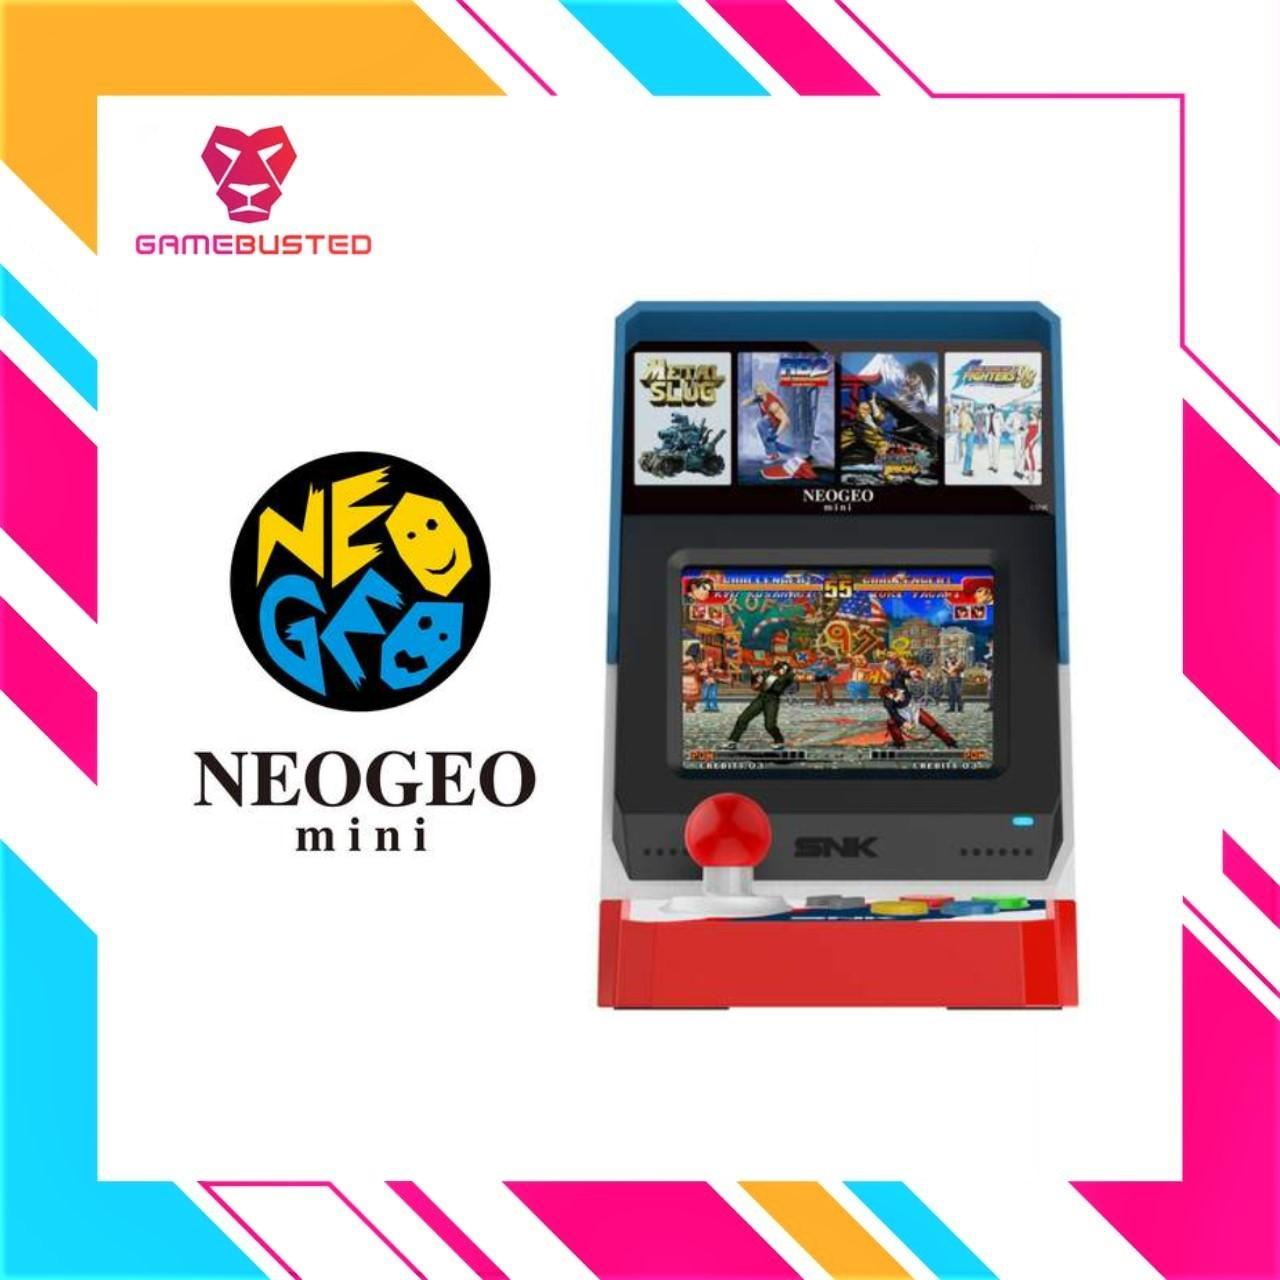 Neogeo Snk 40th Anniversary Mini Console (in Stock Now) By Game Busted.